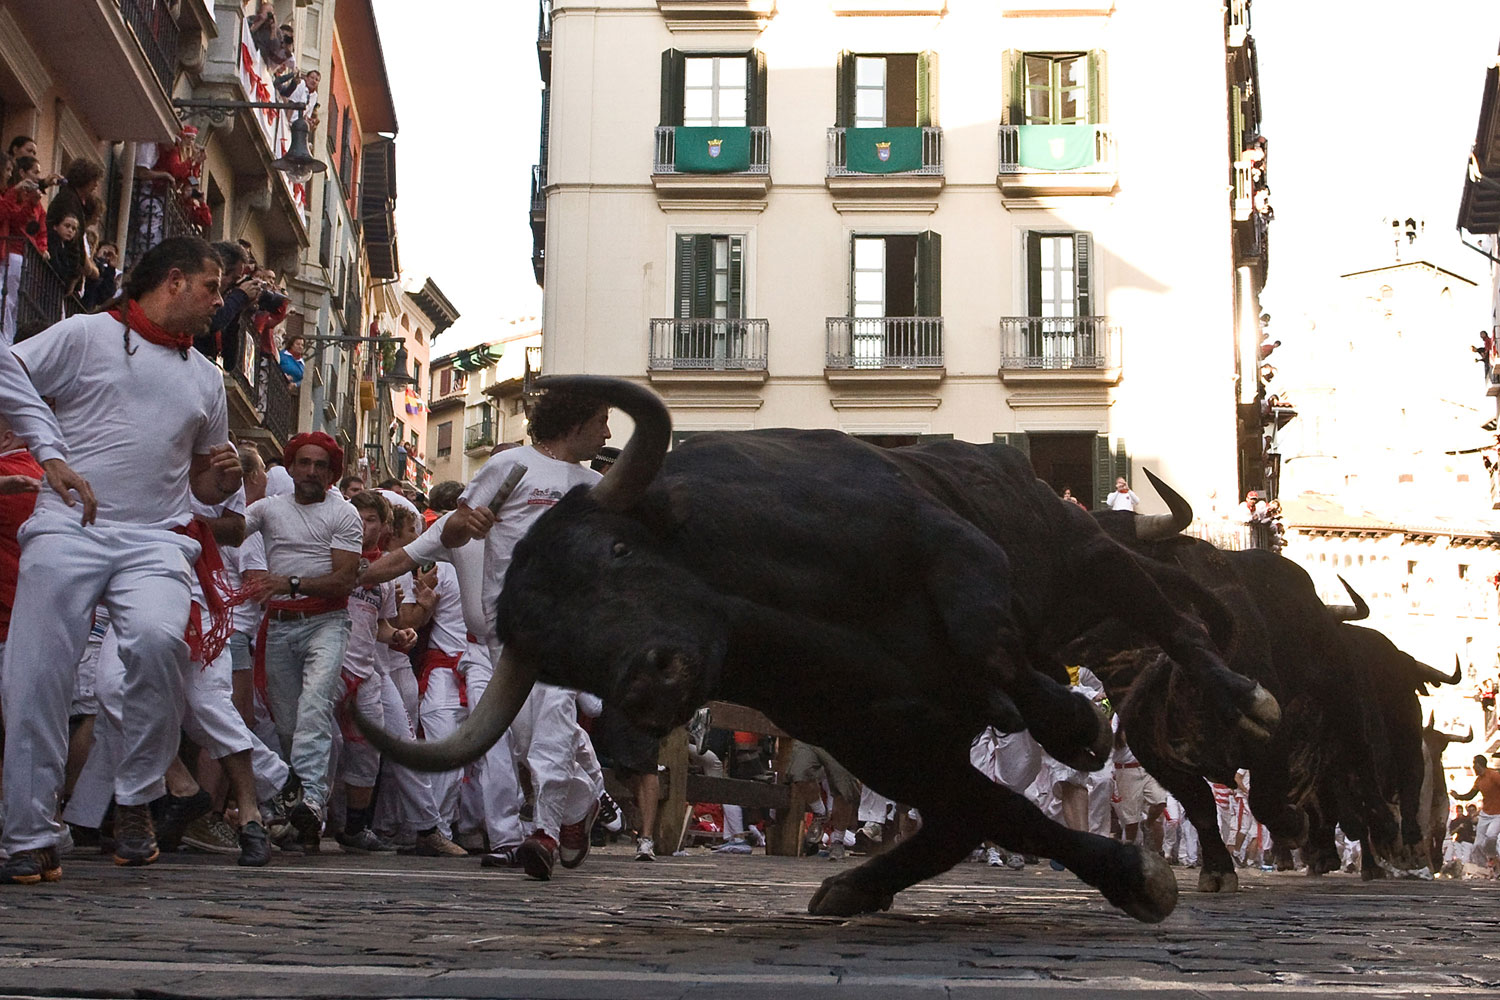 July 8, 2011. A fighting bull loses its balance during the third day of the San Fermin running-of-the-bulls in Pamplona, Spain.